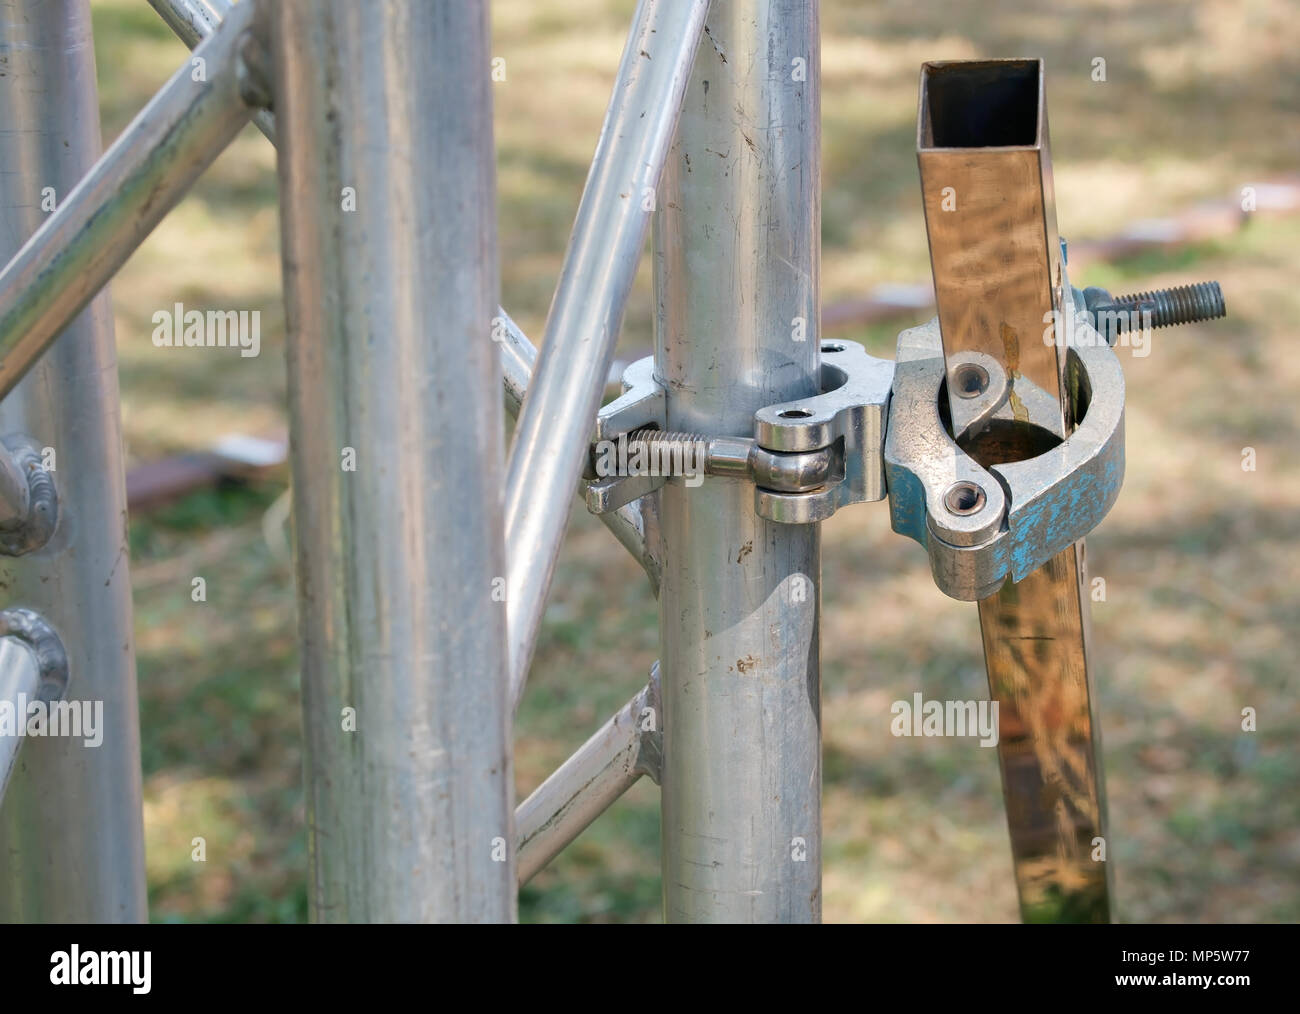 Close up metal scaffolding clamps. - Stock Image